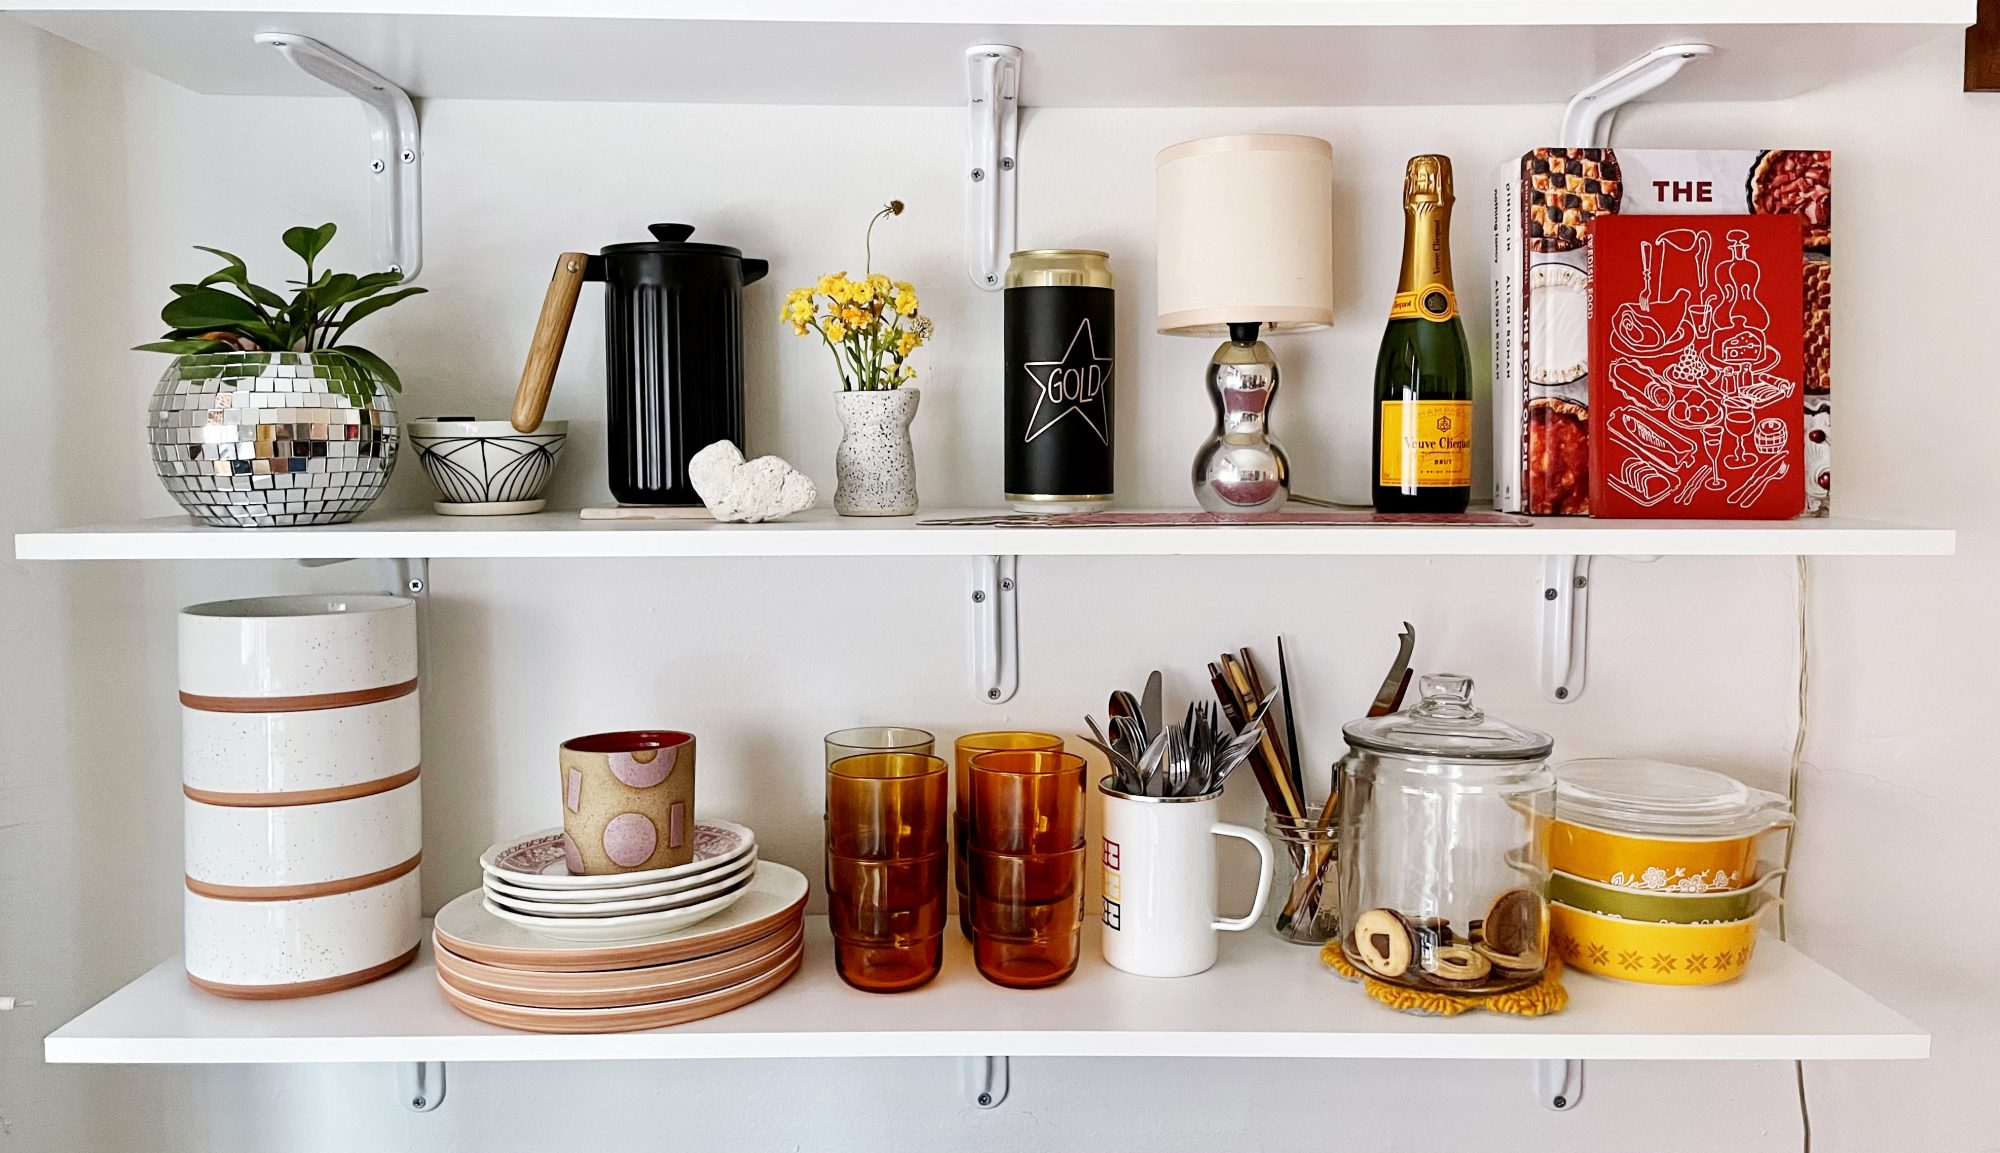 white shelves with various kitchen items